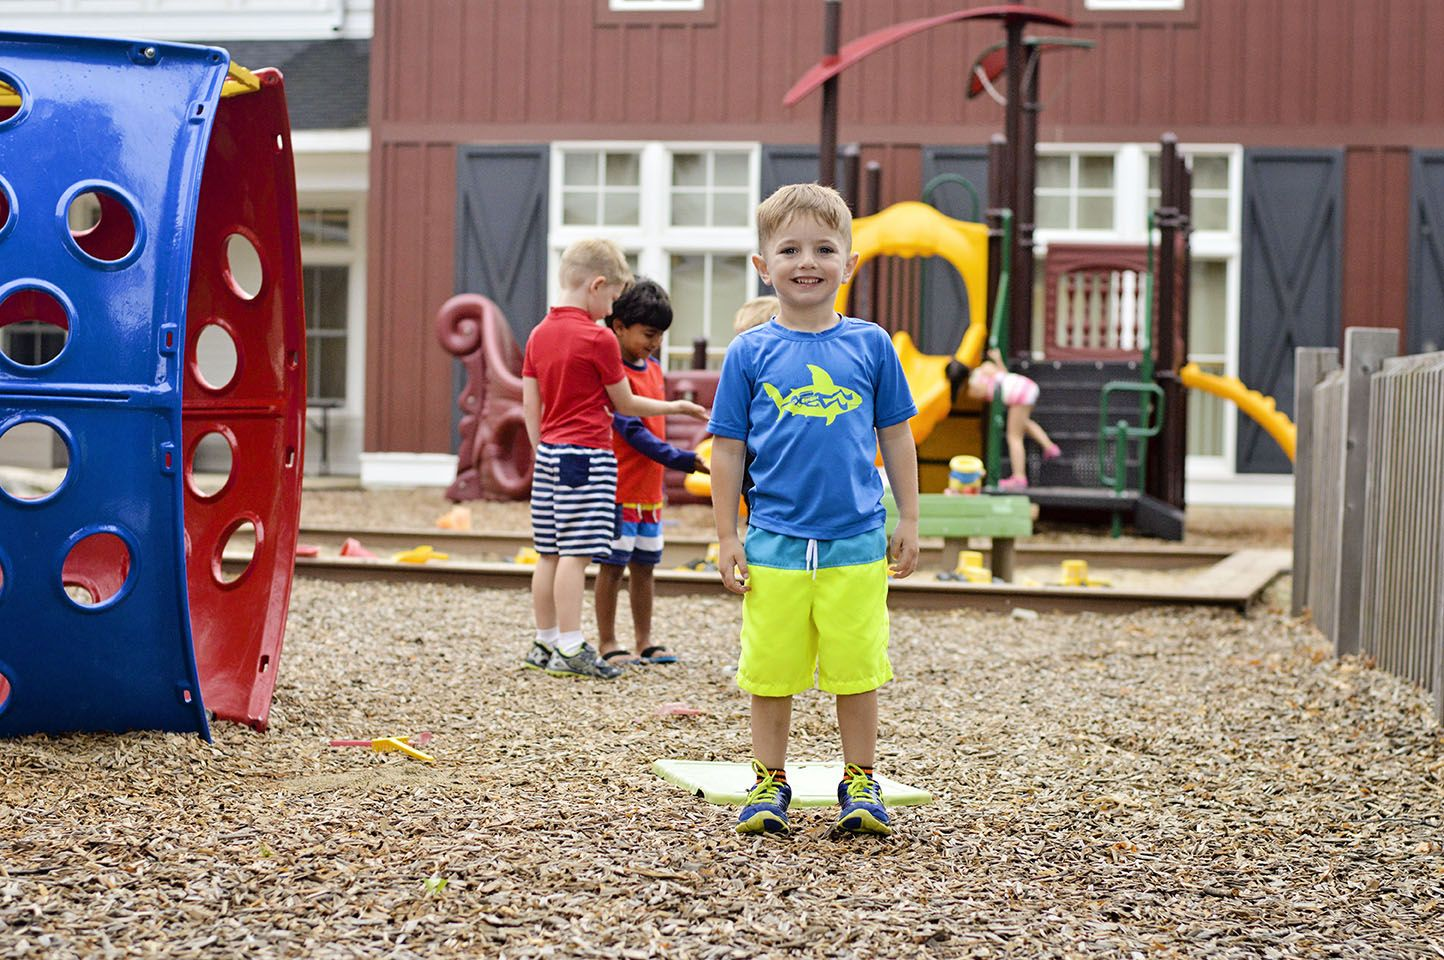 There are two playgrounds on campus that campers use each day. One is designed for younger campers...